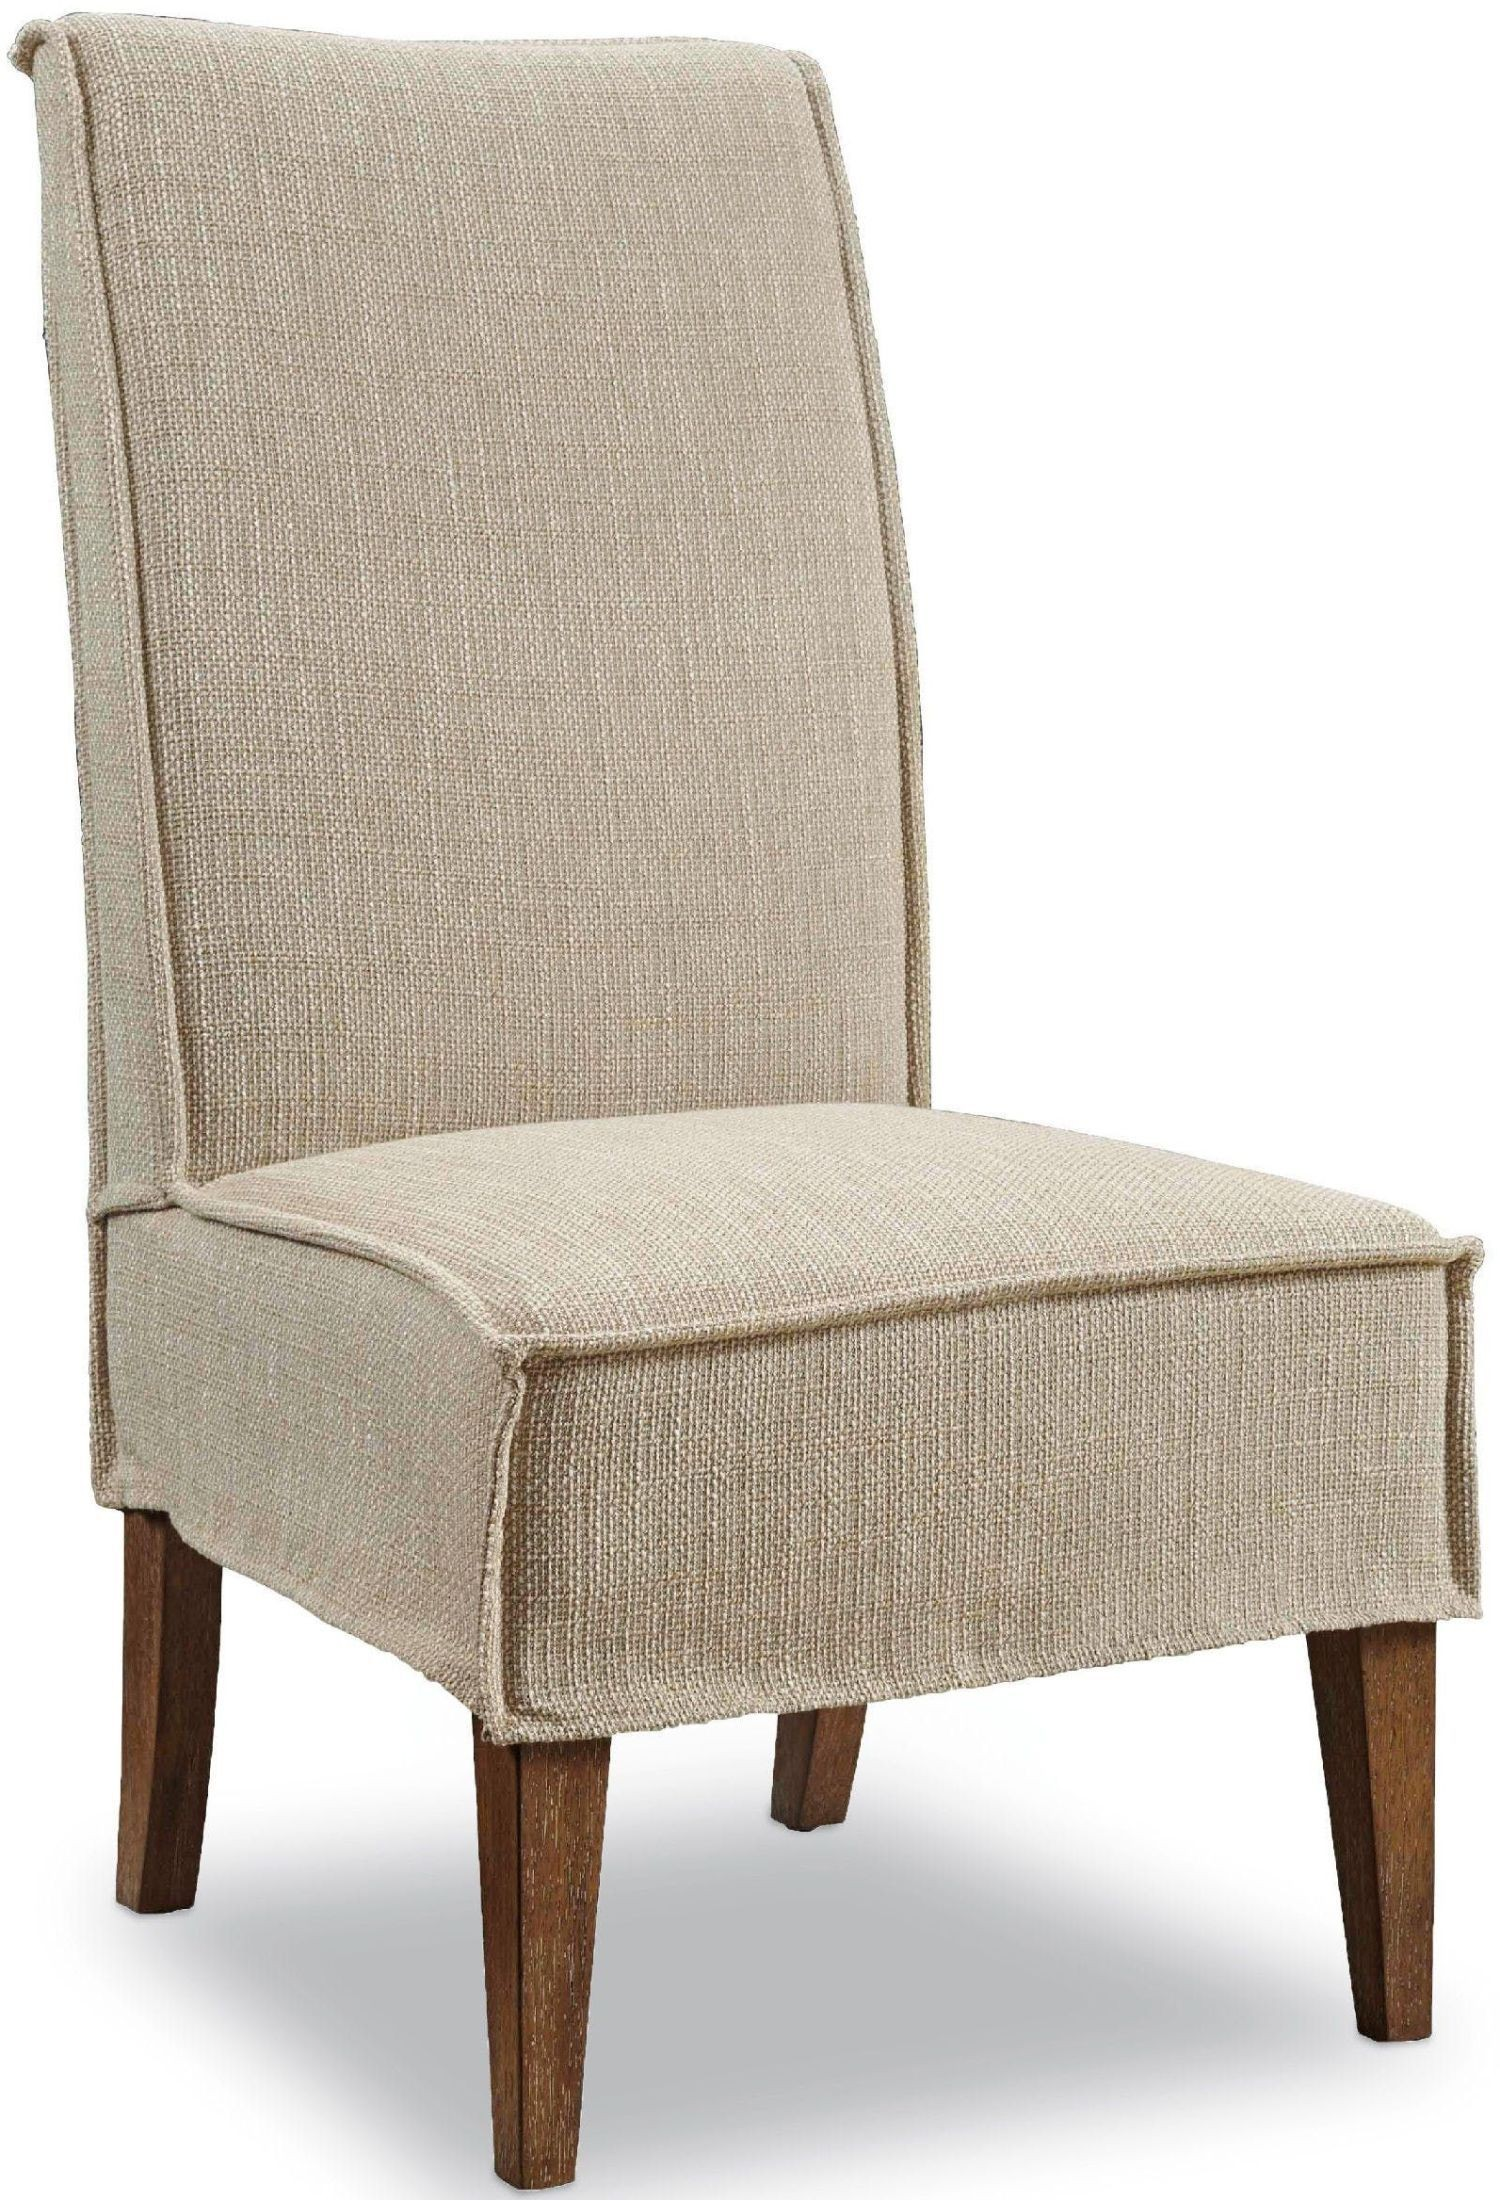 off white dining chair covers rent baby shower decorator beige mini slipcover set of 2 from